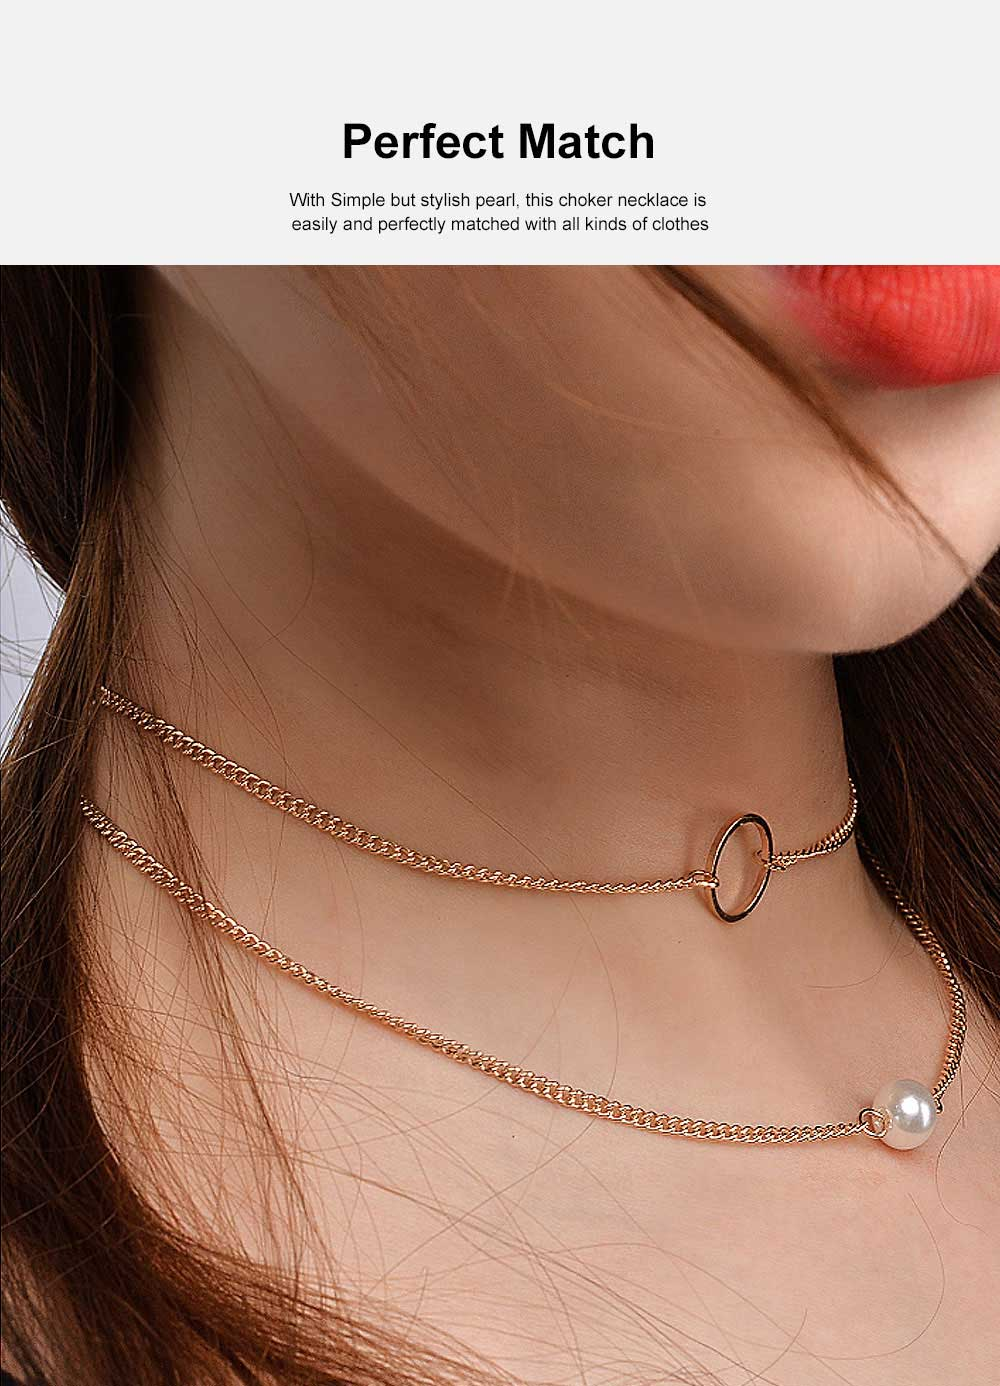 Layered Choker Necklace Pearl Pendant Necklace Double Anti-Rusty Chain Personalized Jewelry Gift for Women 2